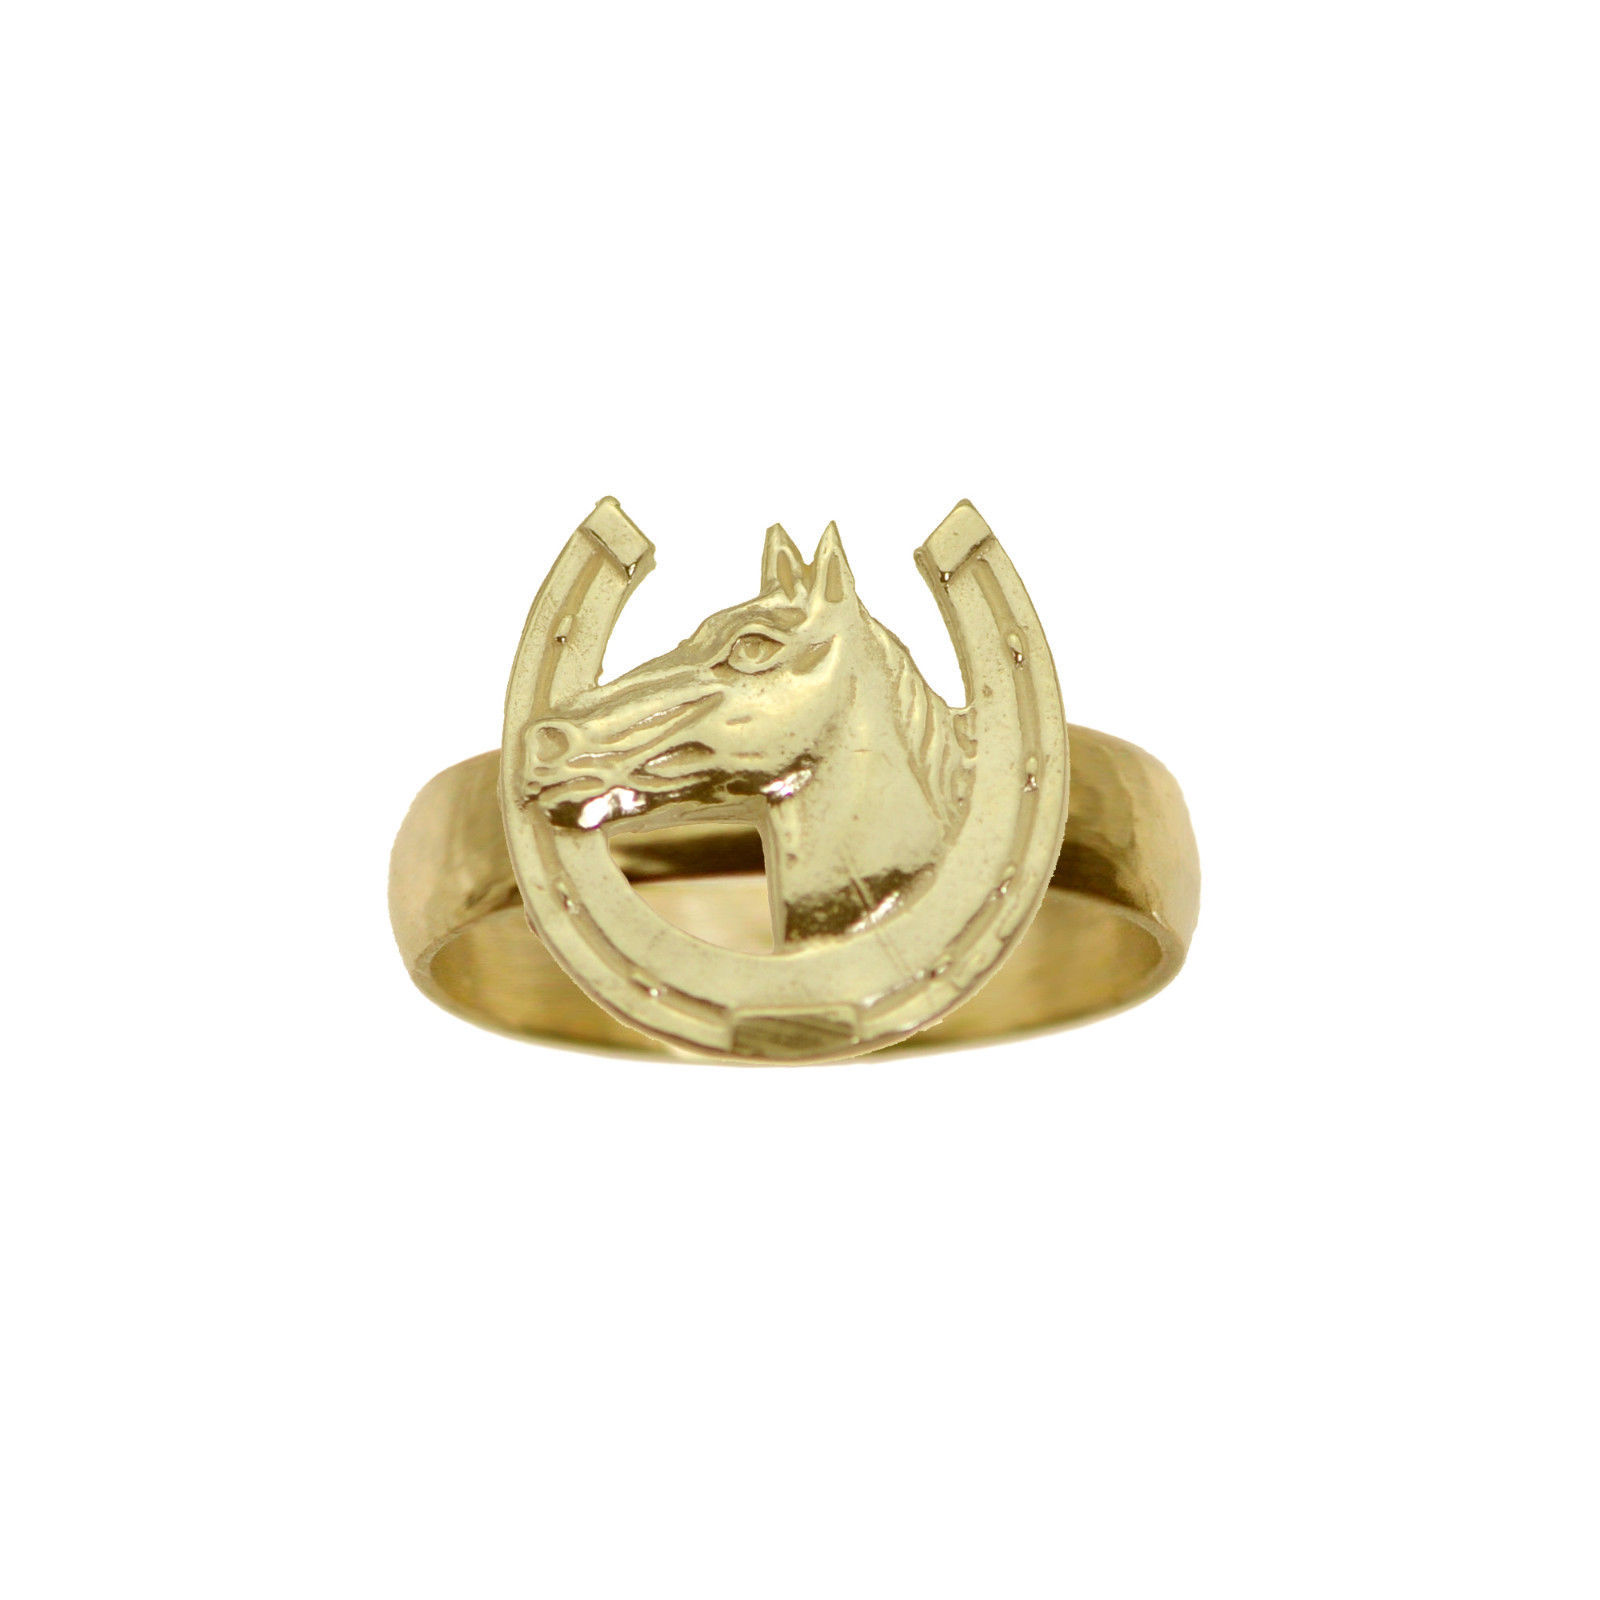 Horse Shoe Good Luck Ring Real 24K Yellow Gold Plated Jewelry New Pick Size